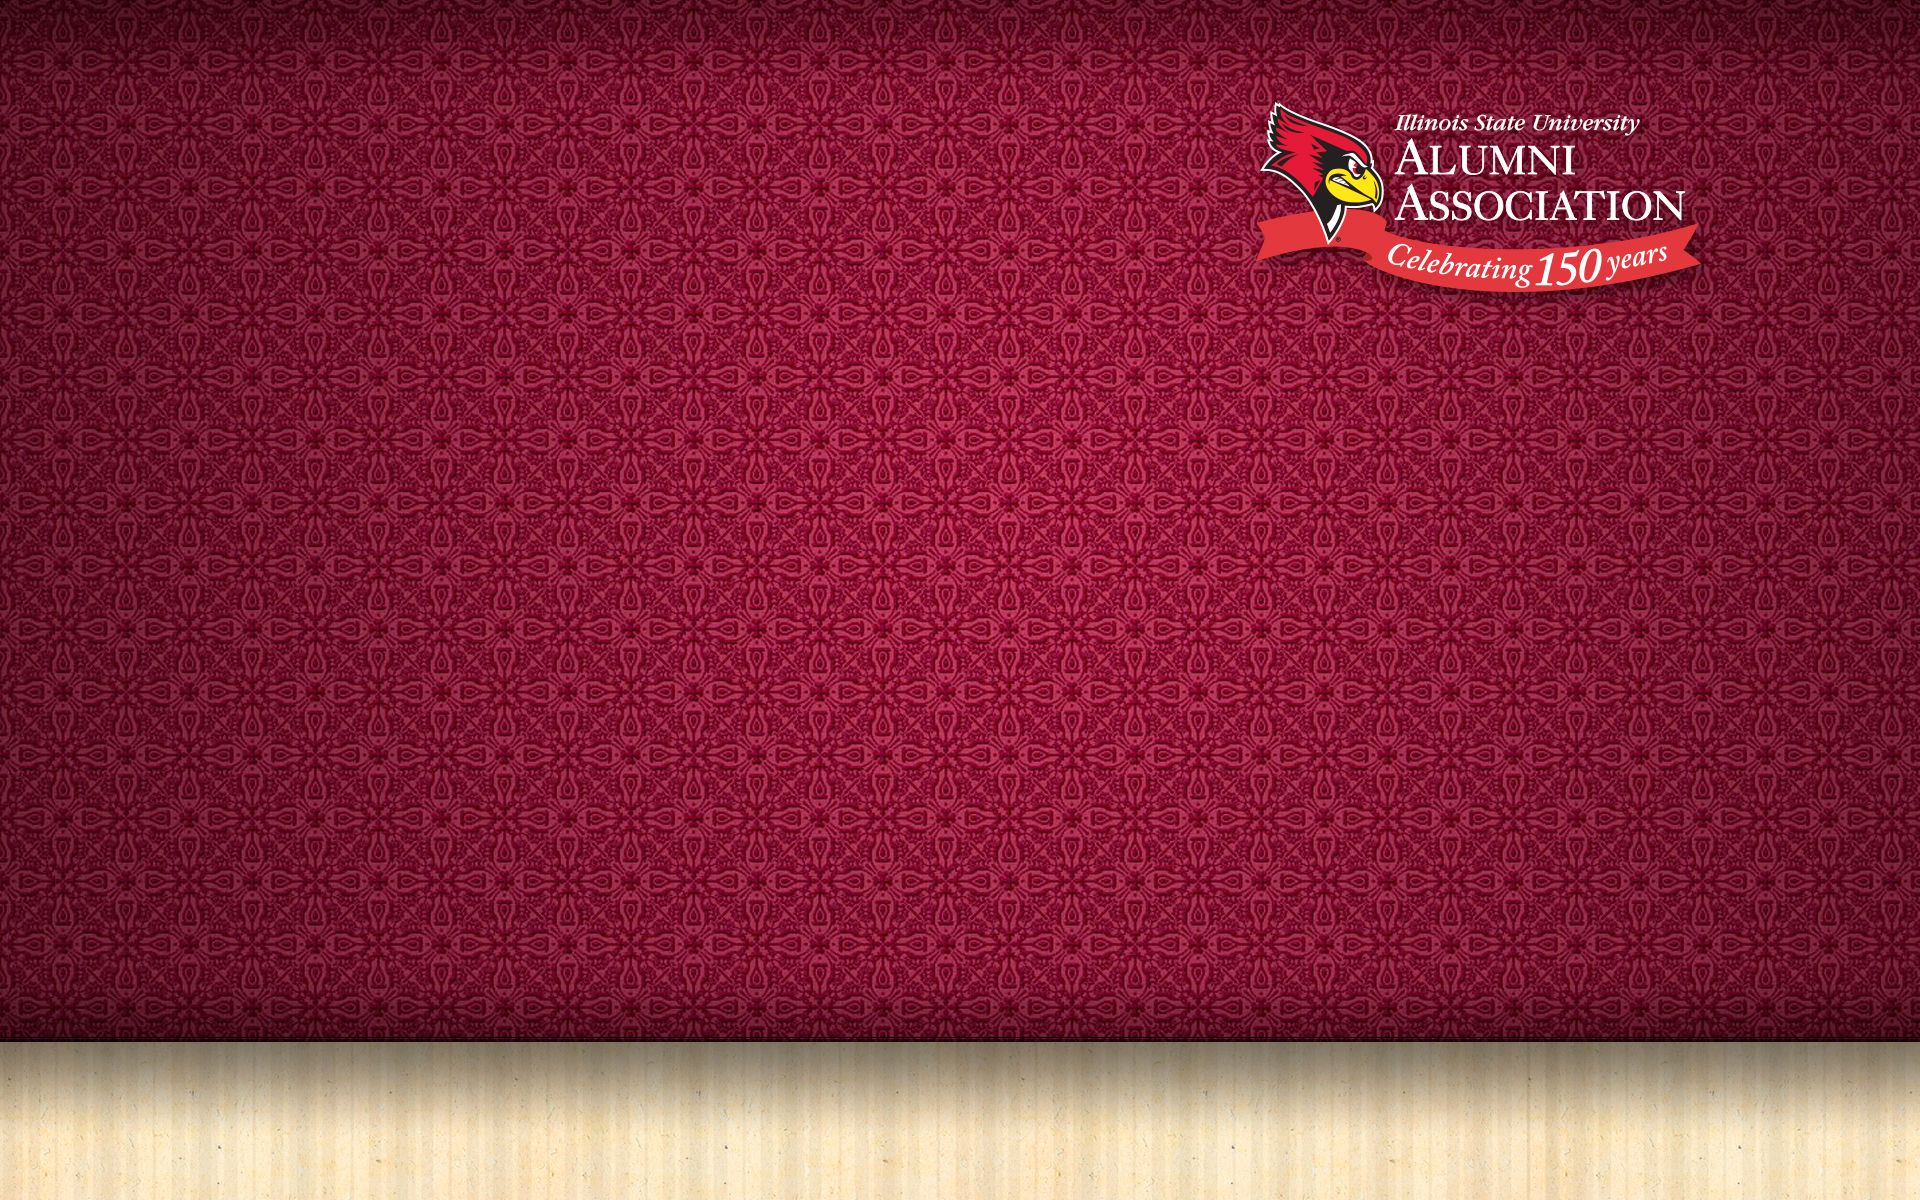 Desktop Wallpapers, Wallpaper Backgrounds, Illinois State, State University, Pride, Background Images, Gay Pride, Desktop Backgrounds